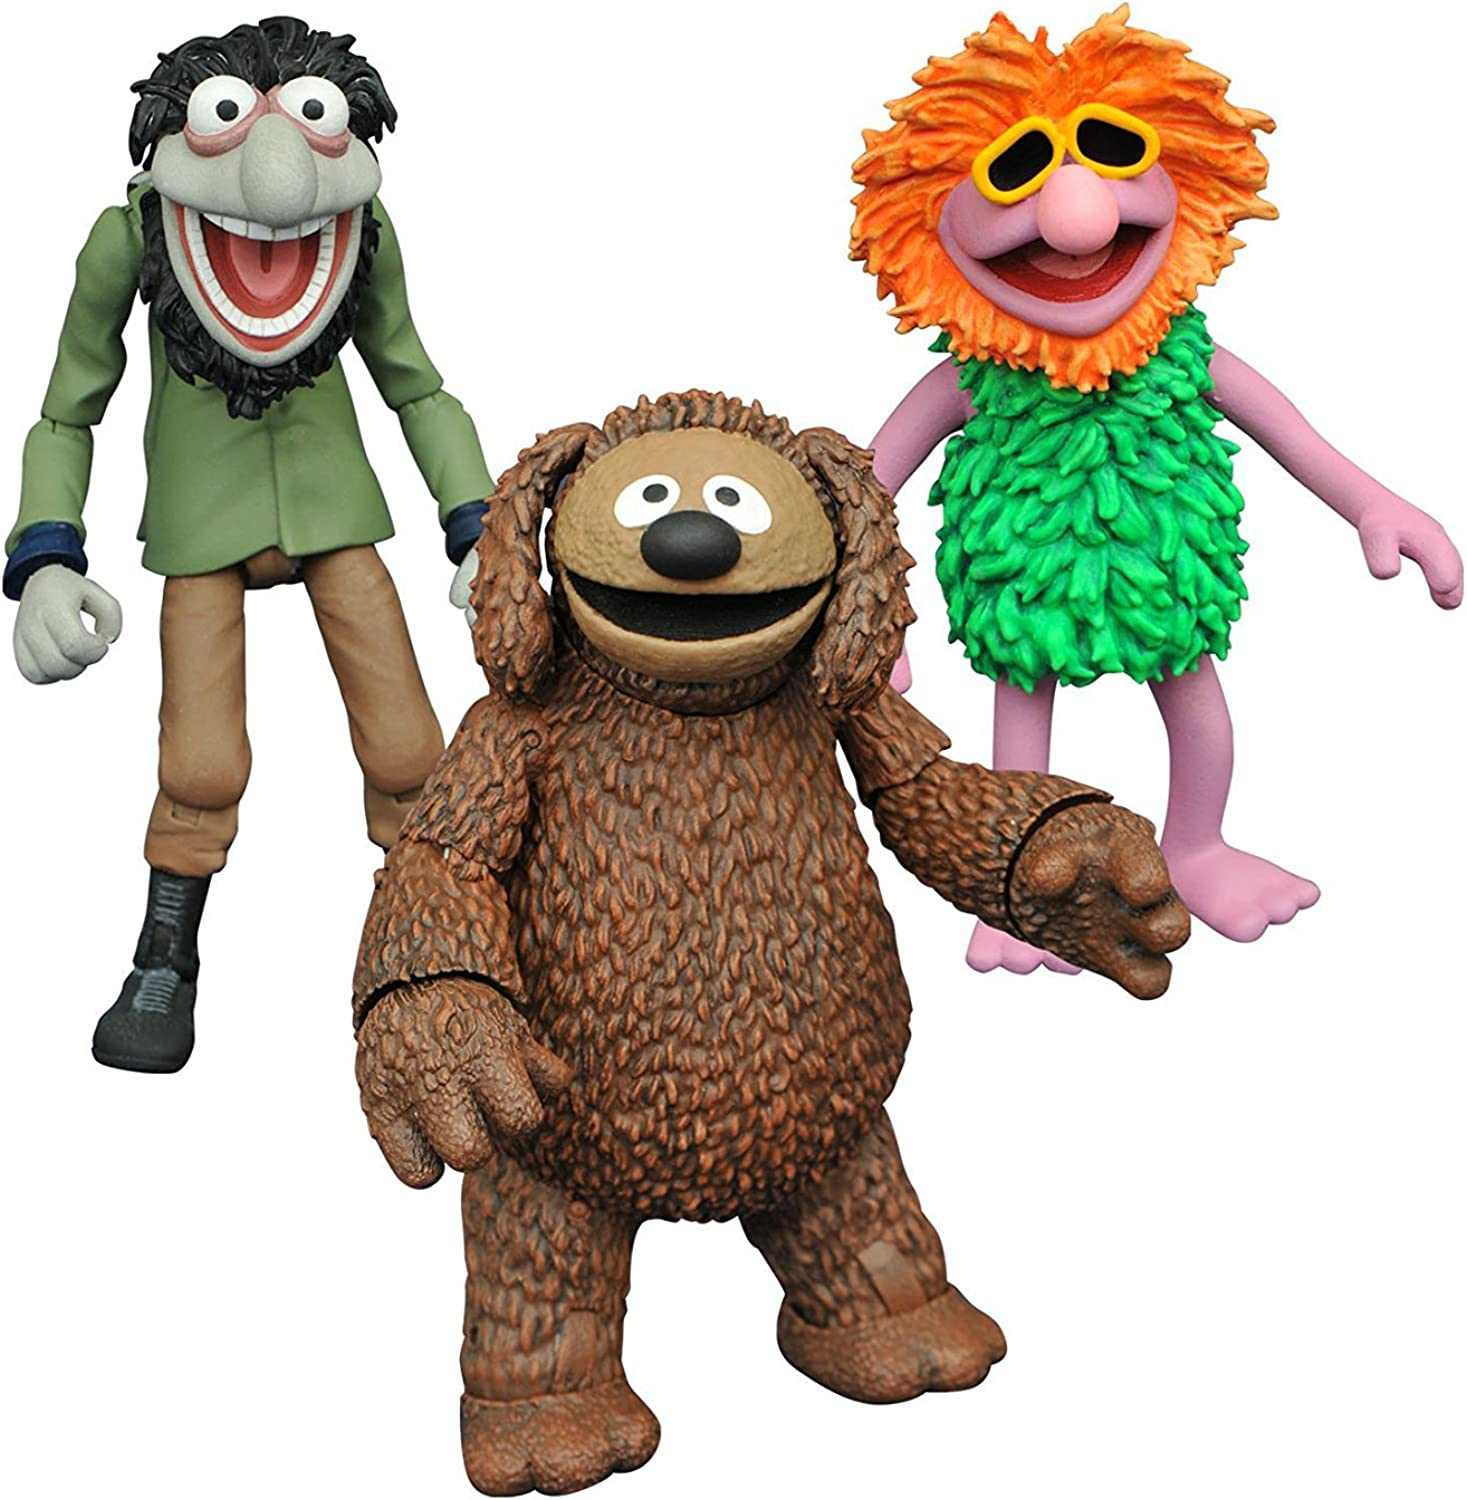 Diamond Select Toys The Muppets  Rowlf, Mahna Mahna, and Crazy Harry Select Action Figure (3 Pack)